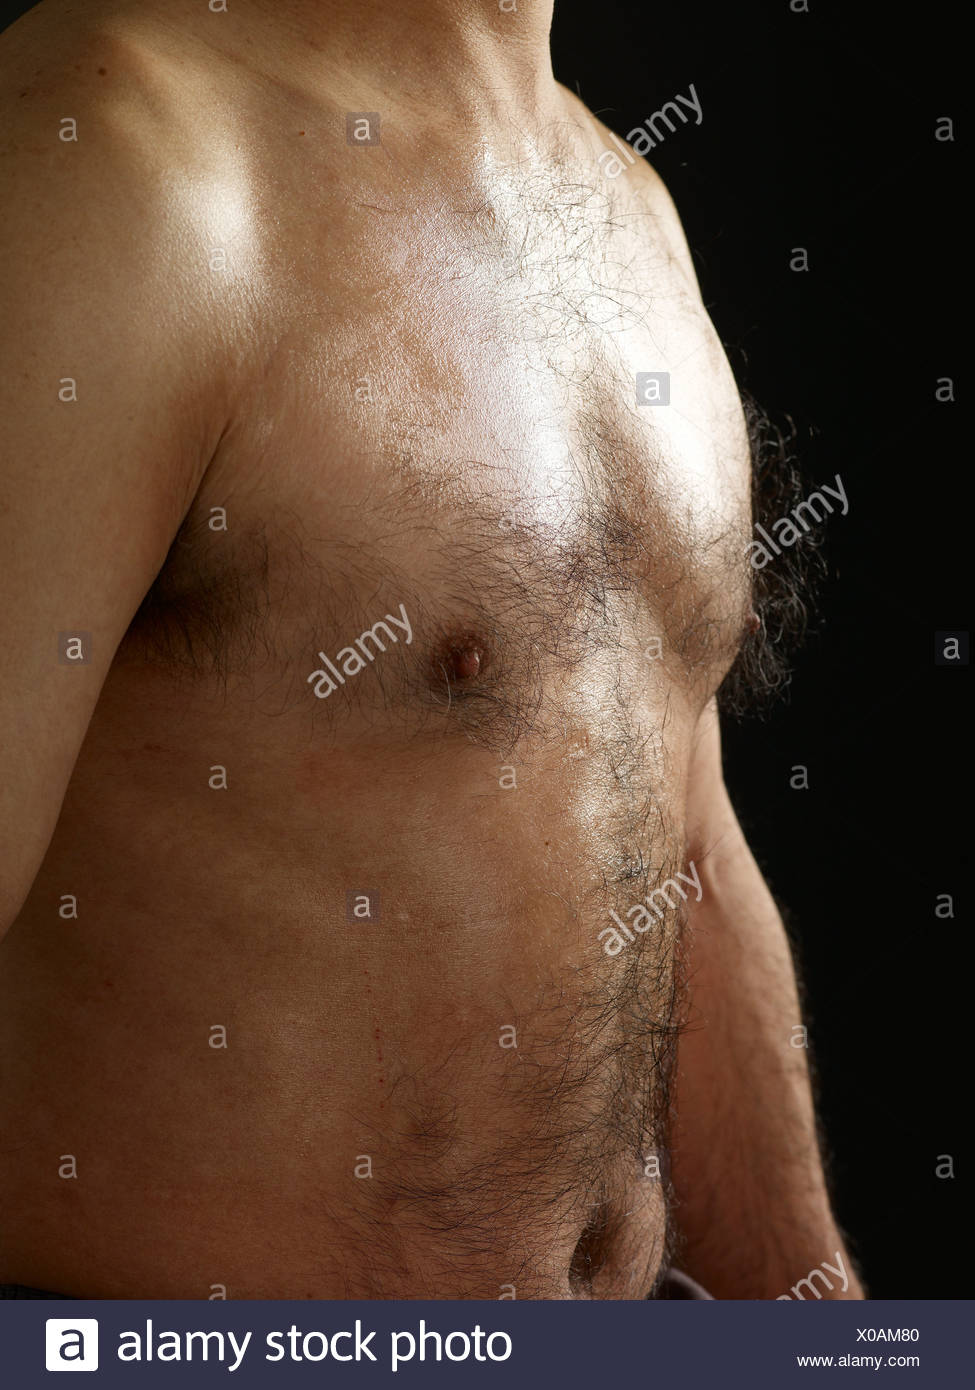 Shirtless man with hairy chest side view - Stock Image